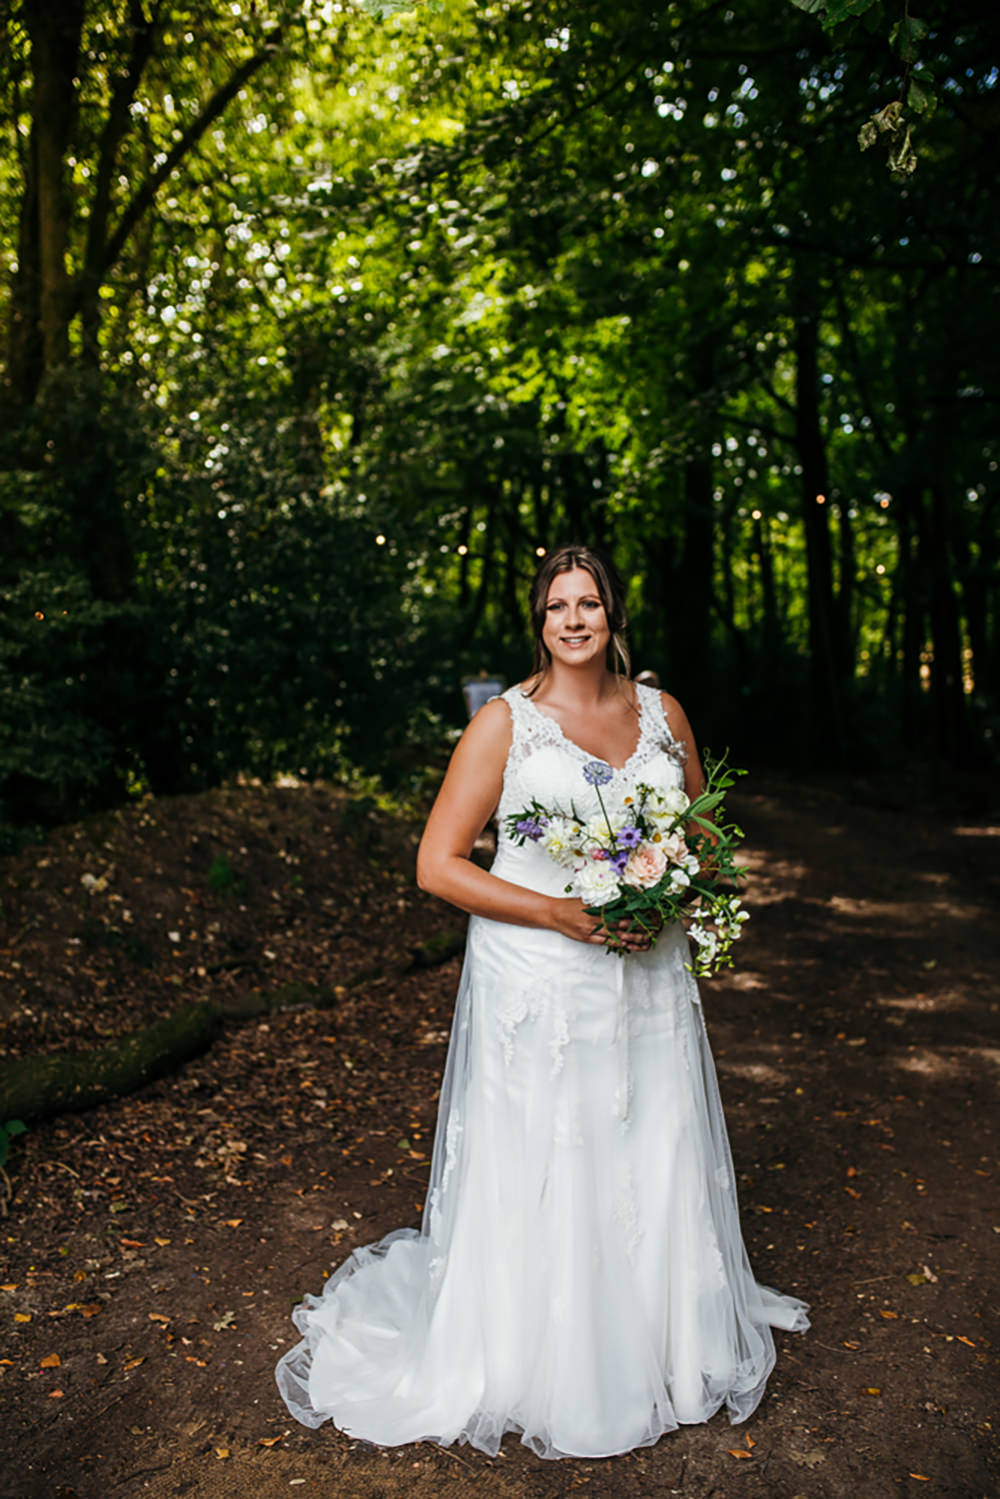 Bride Bridal Dress Gown V Neck Lila's Wood Wedding Two-D Photography